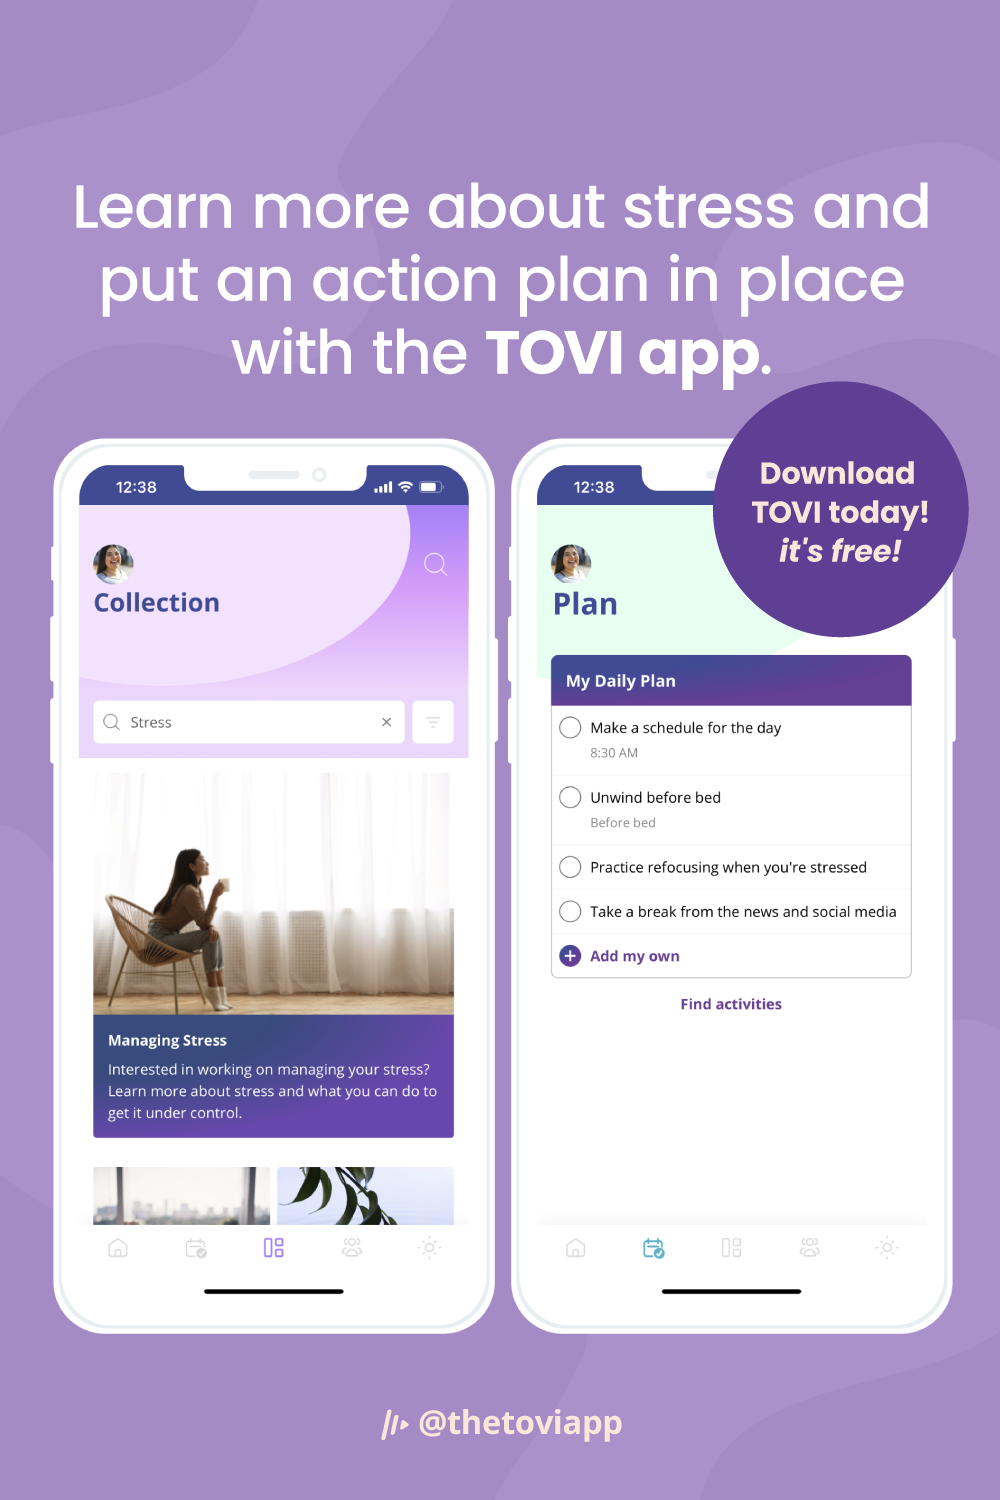 Learn more about stress and put an action plan in place with the TOVI app.